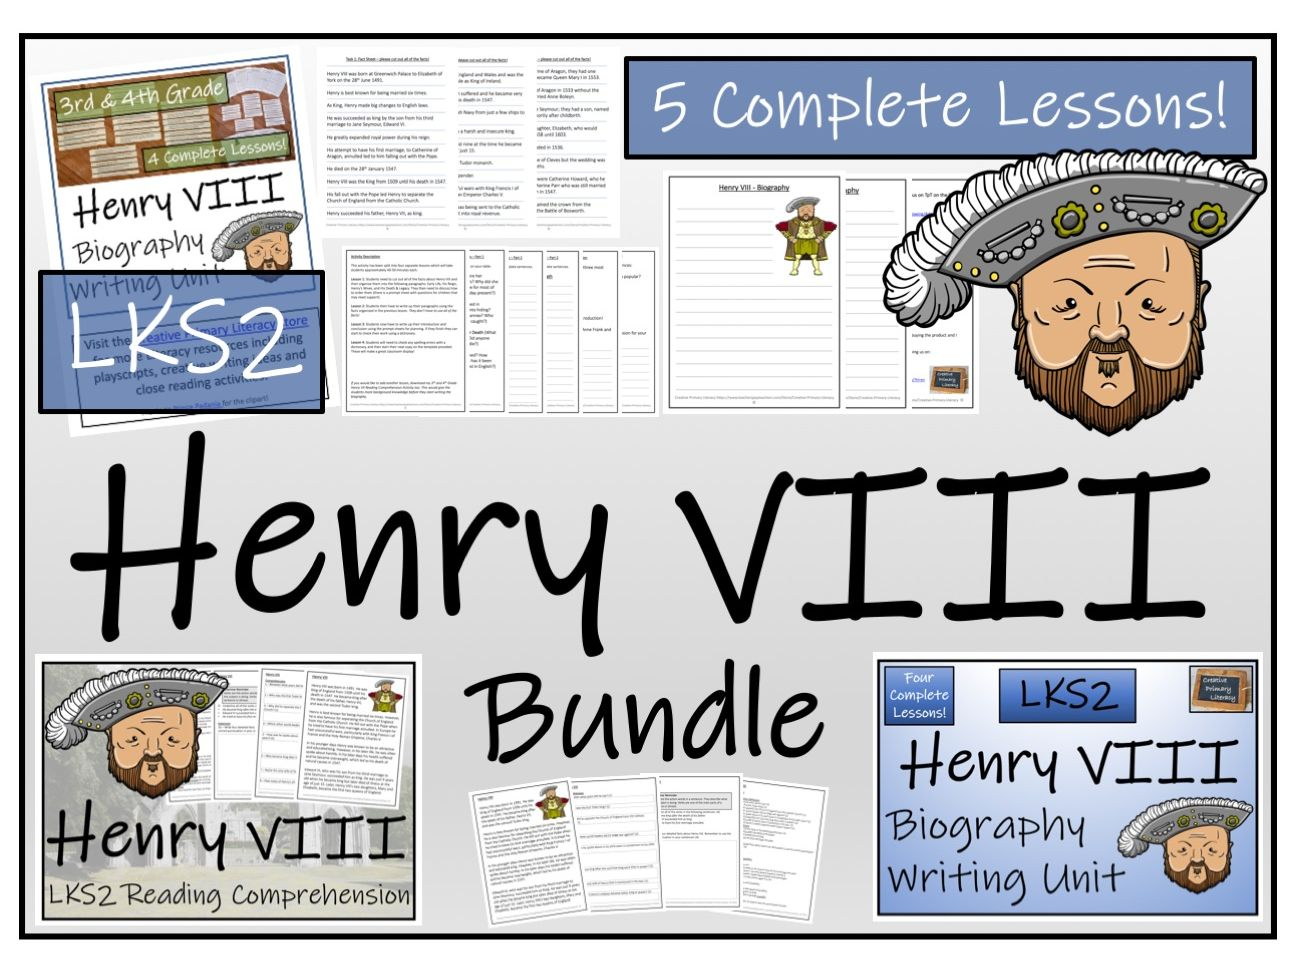 LKS2 History - Henry VIII Reading Comprehension & Biography Bundle